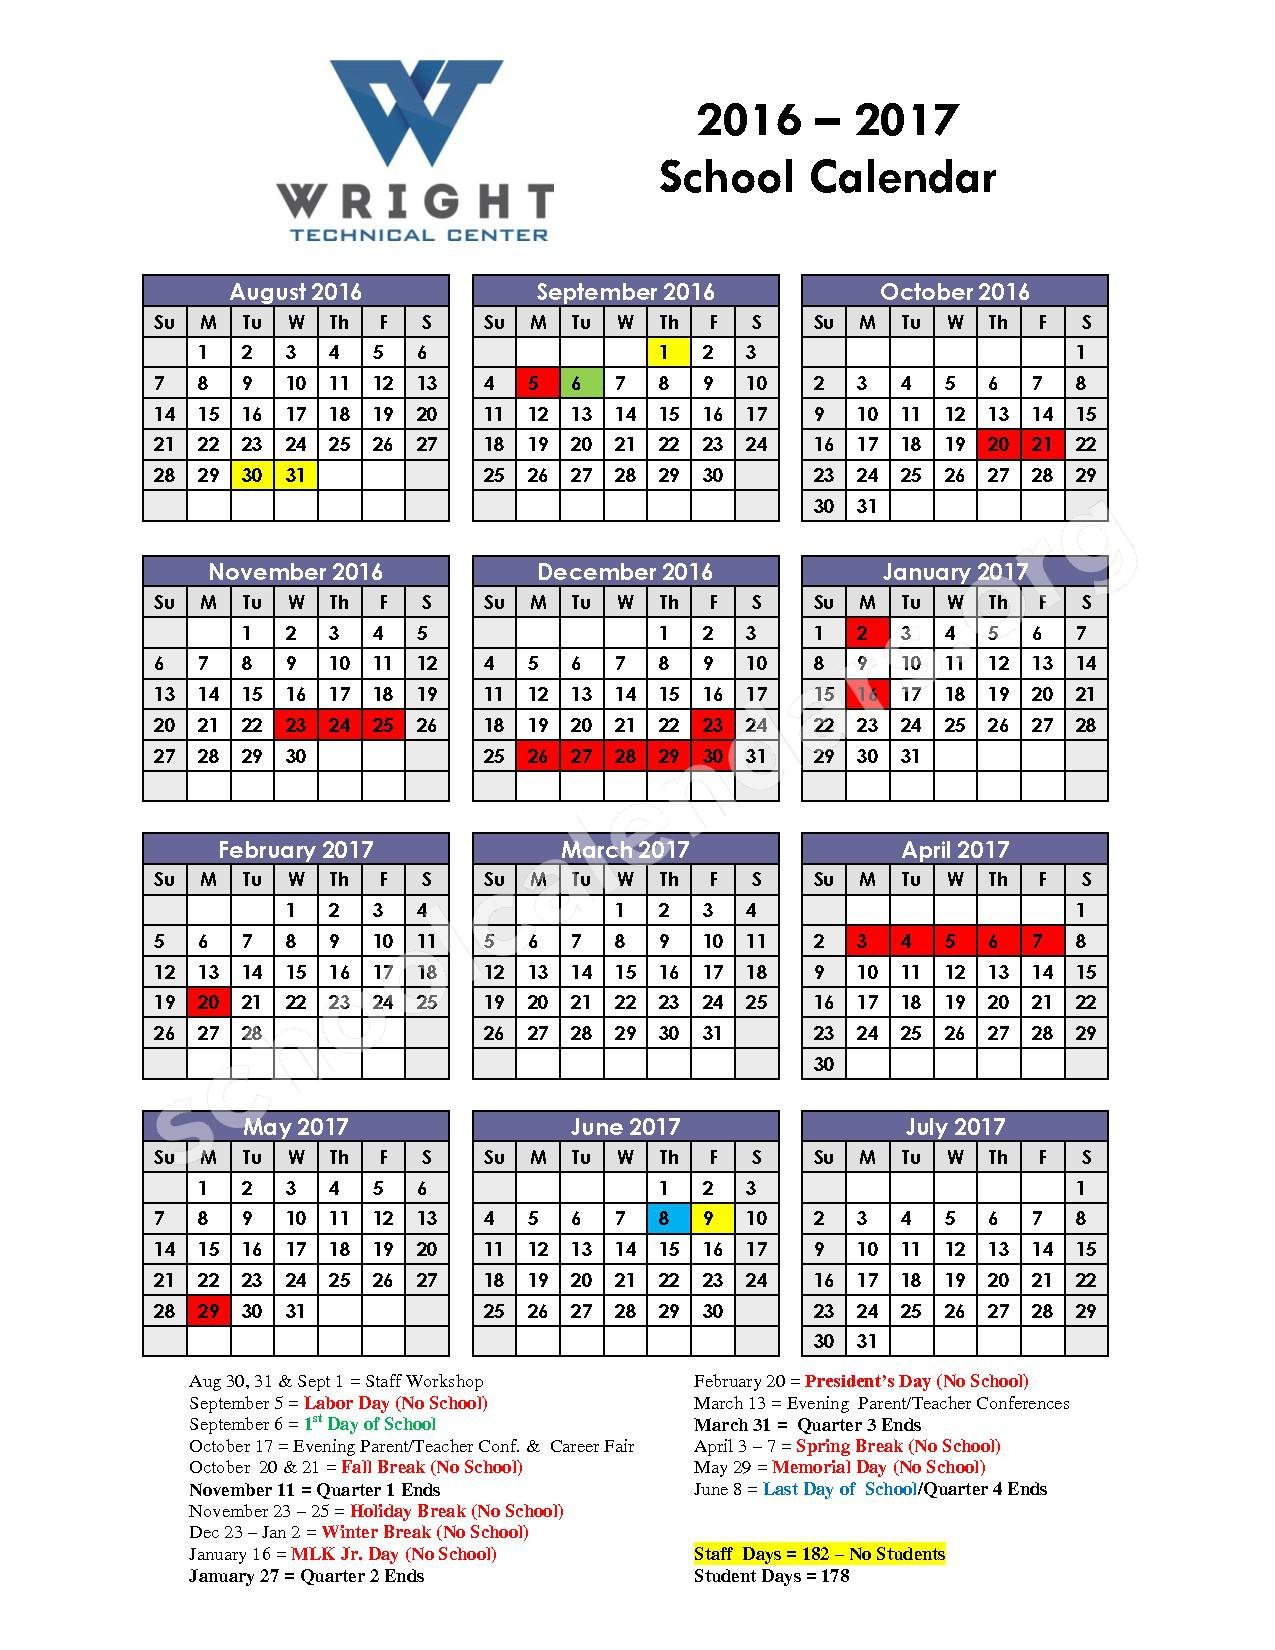 2016 - 2017 Calendar – Wright Technical Center – page 1